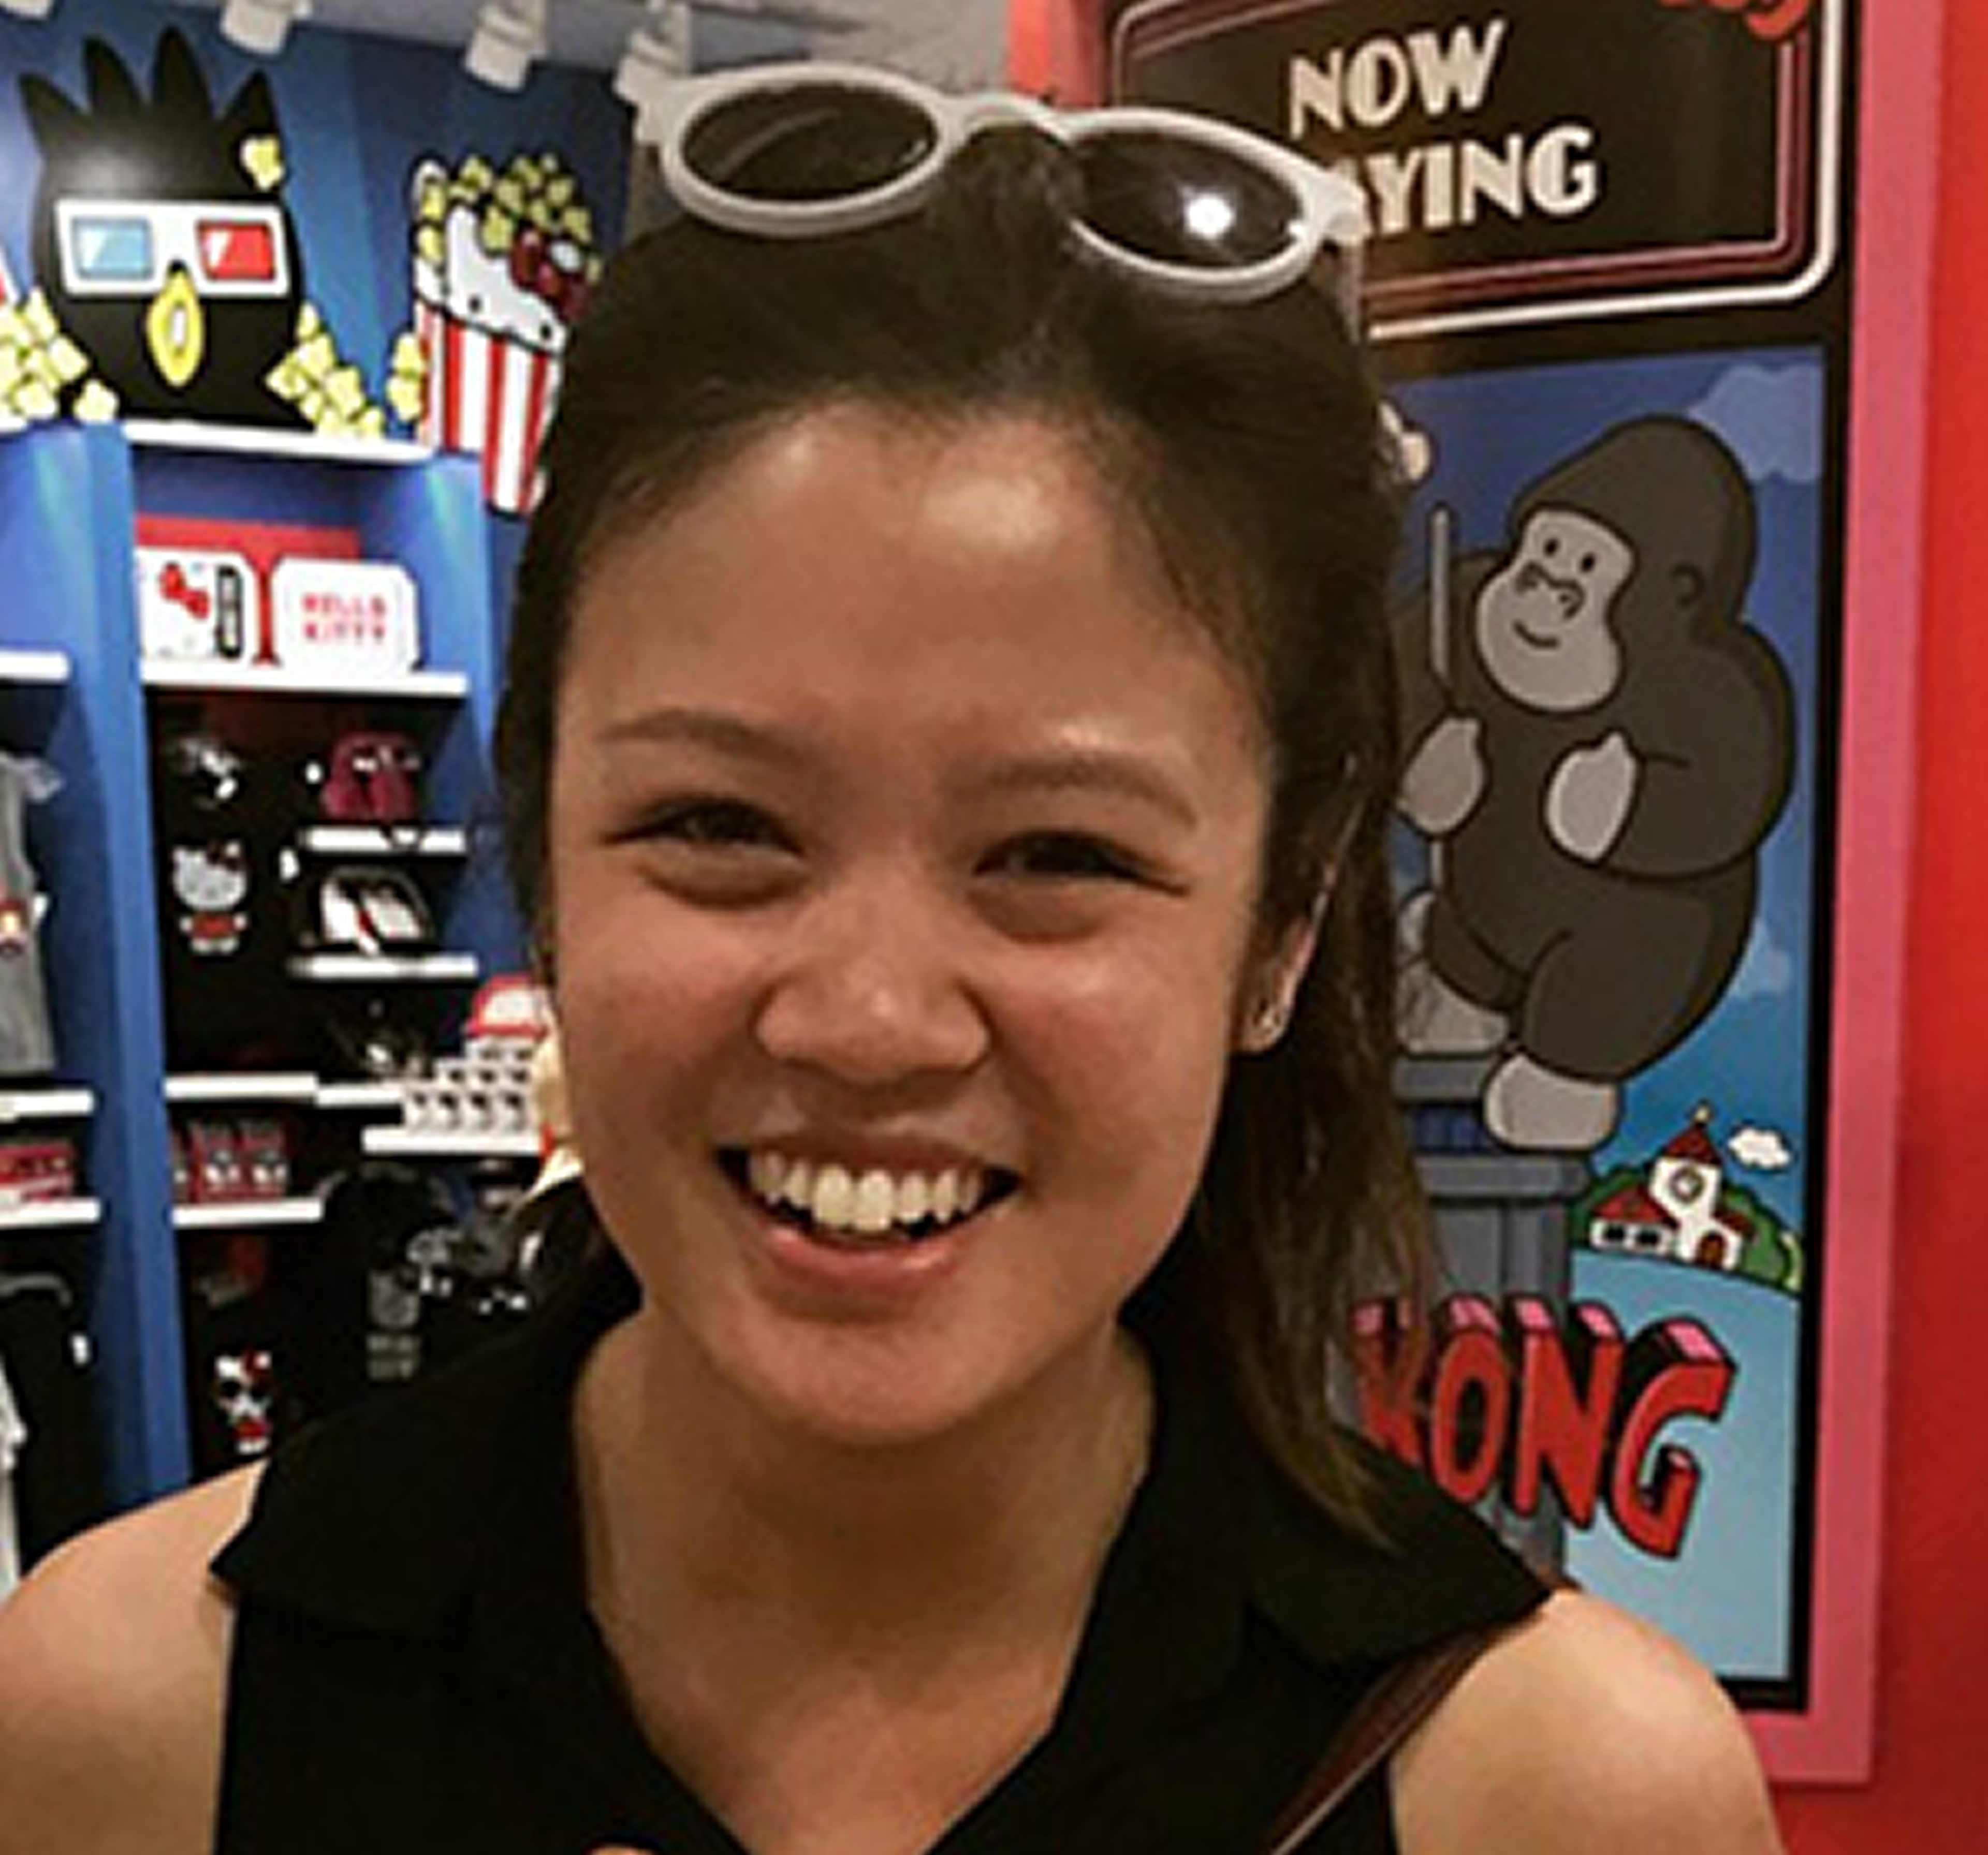 Quynh Dinh